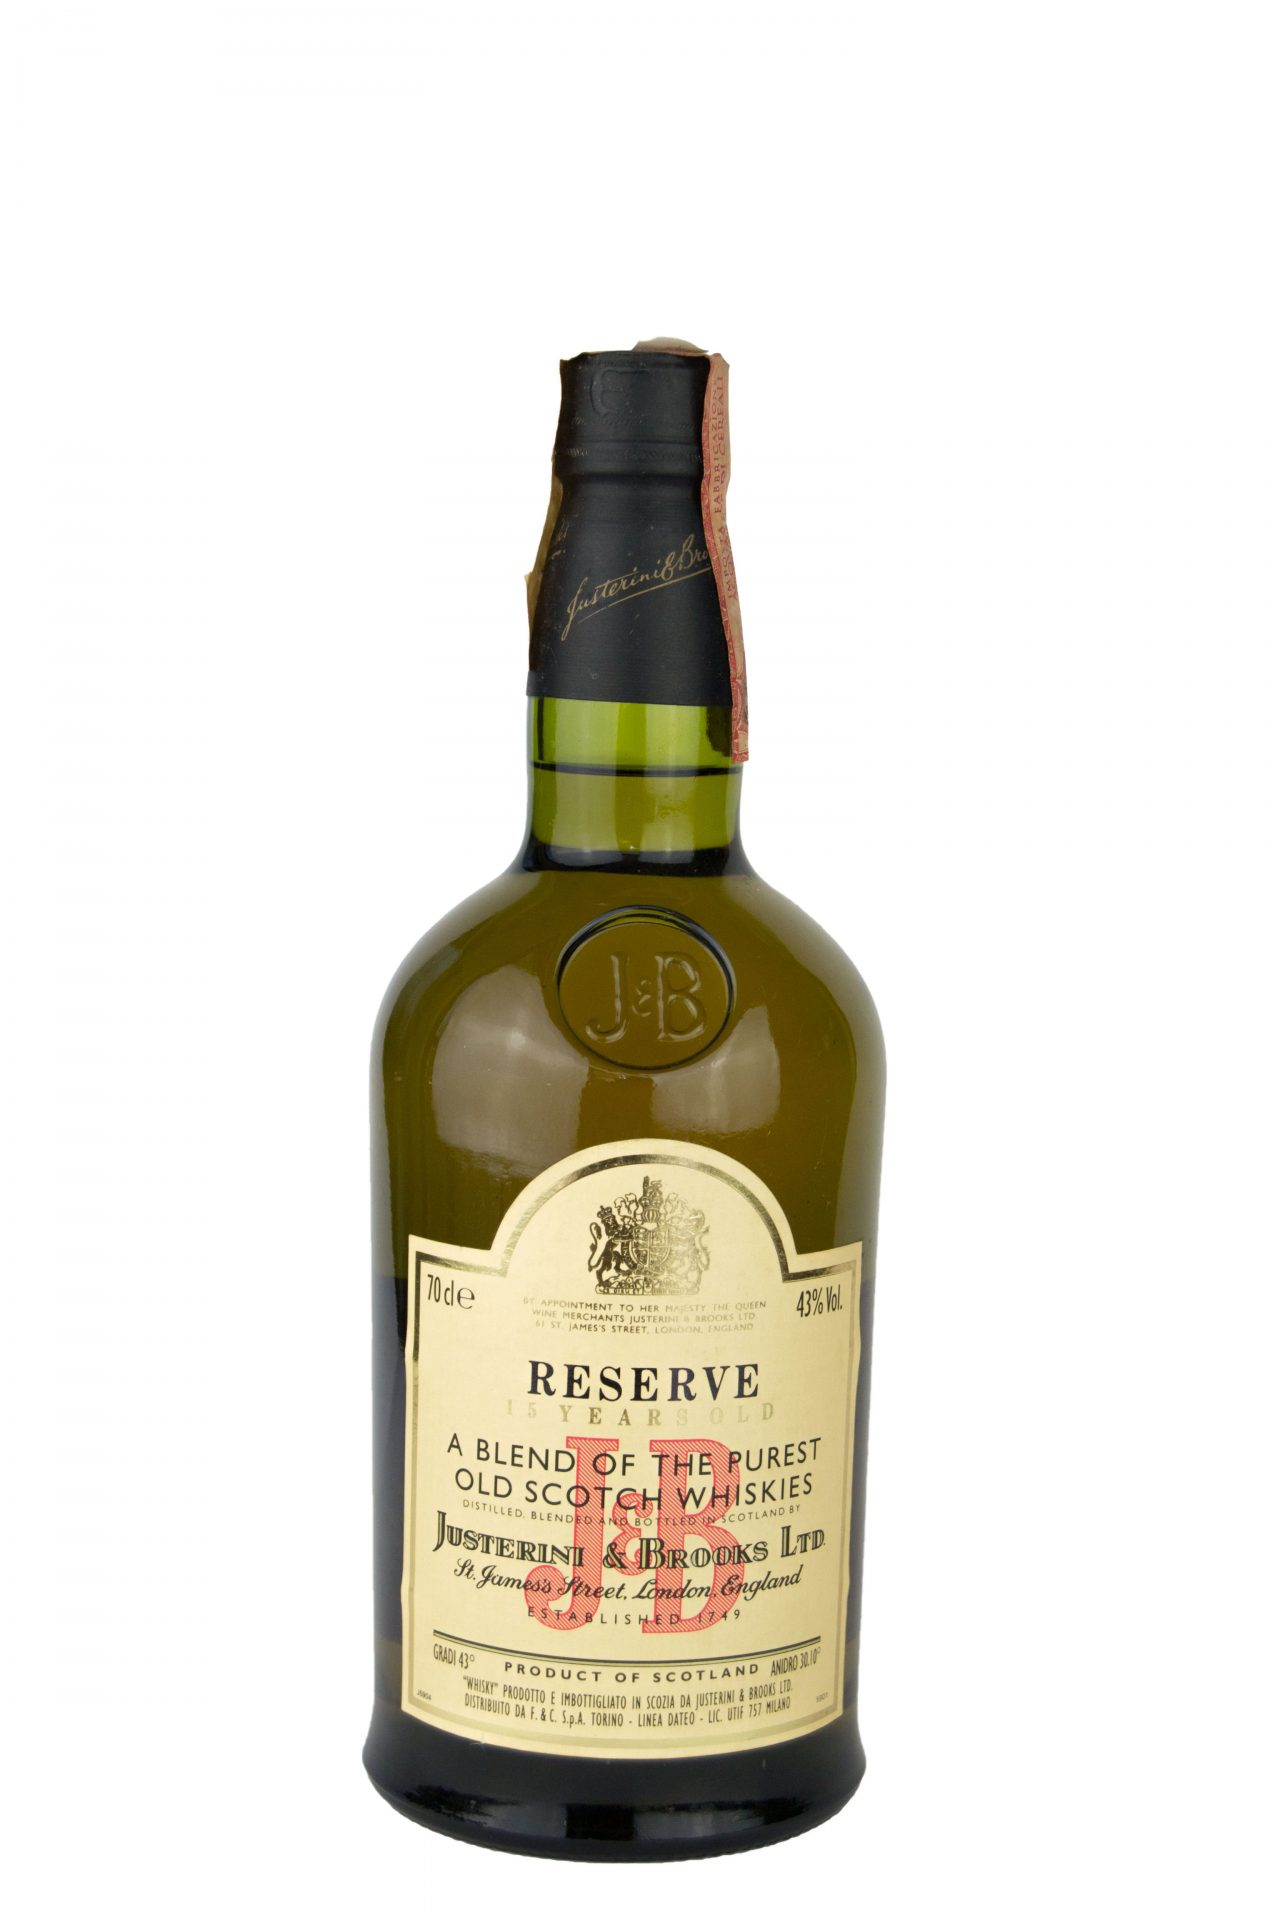 J&B – Reserve 15 Years Old